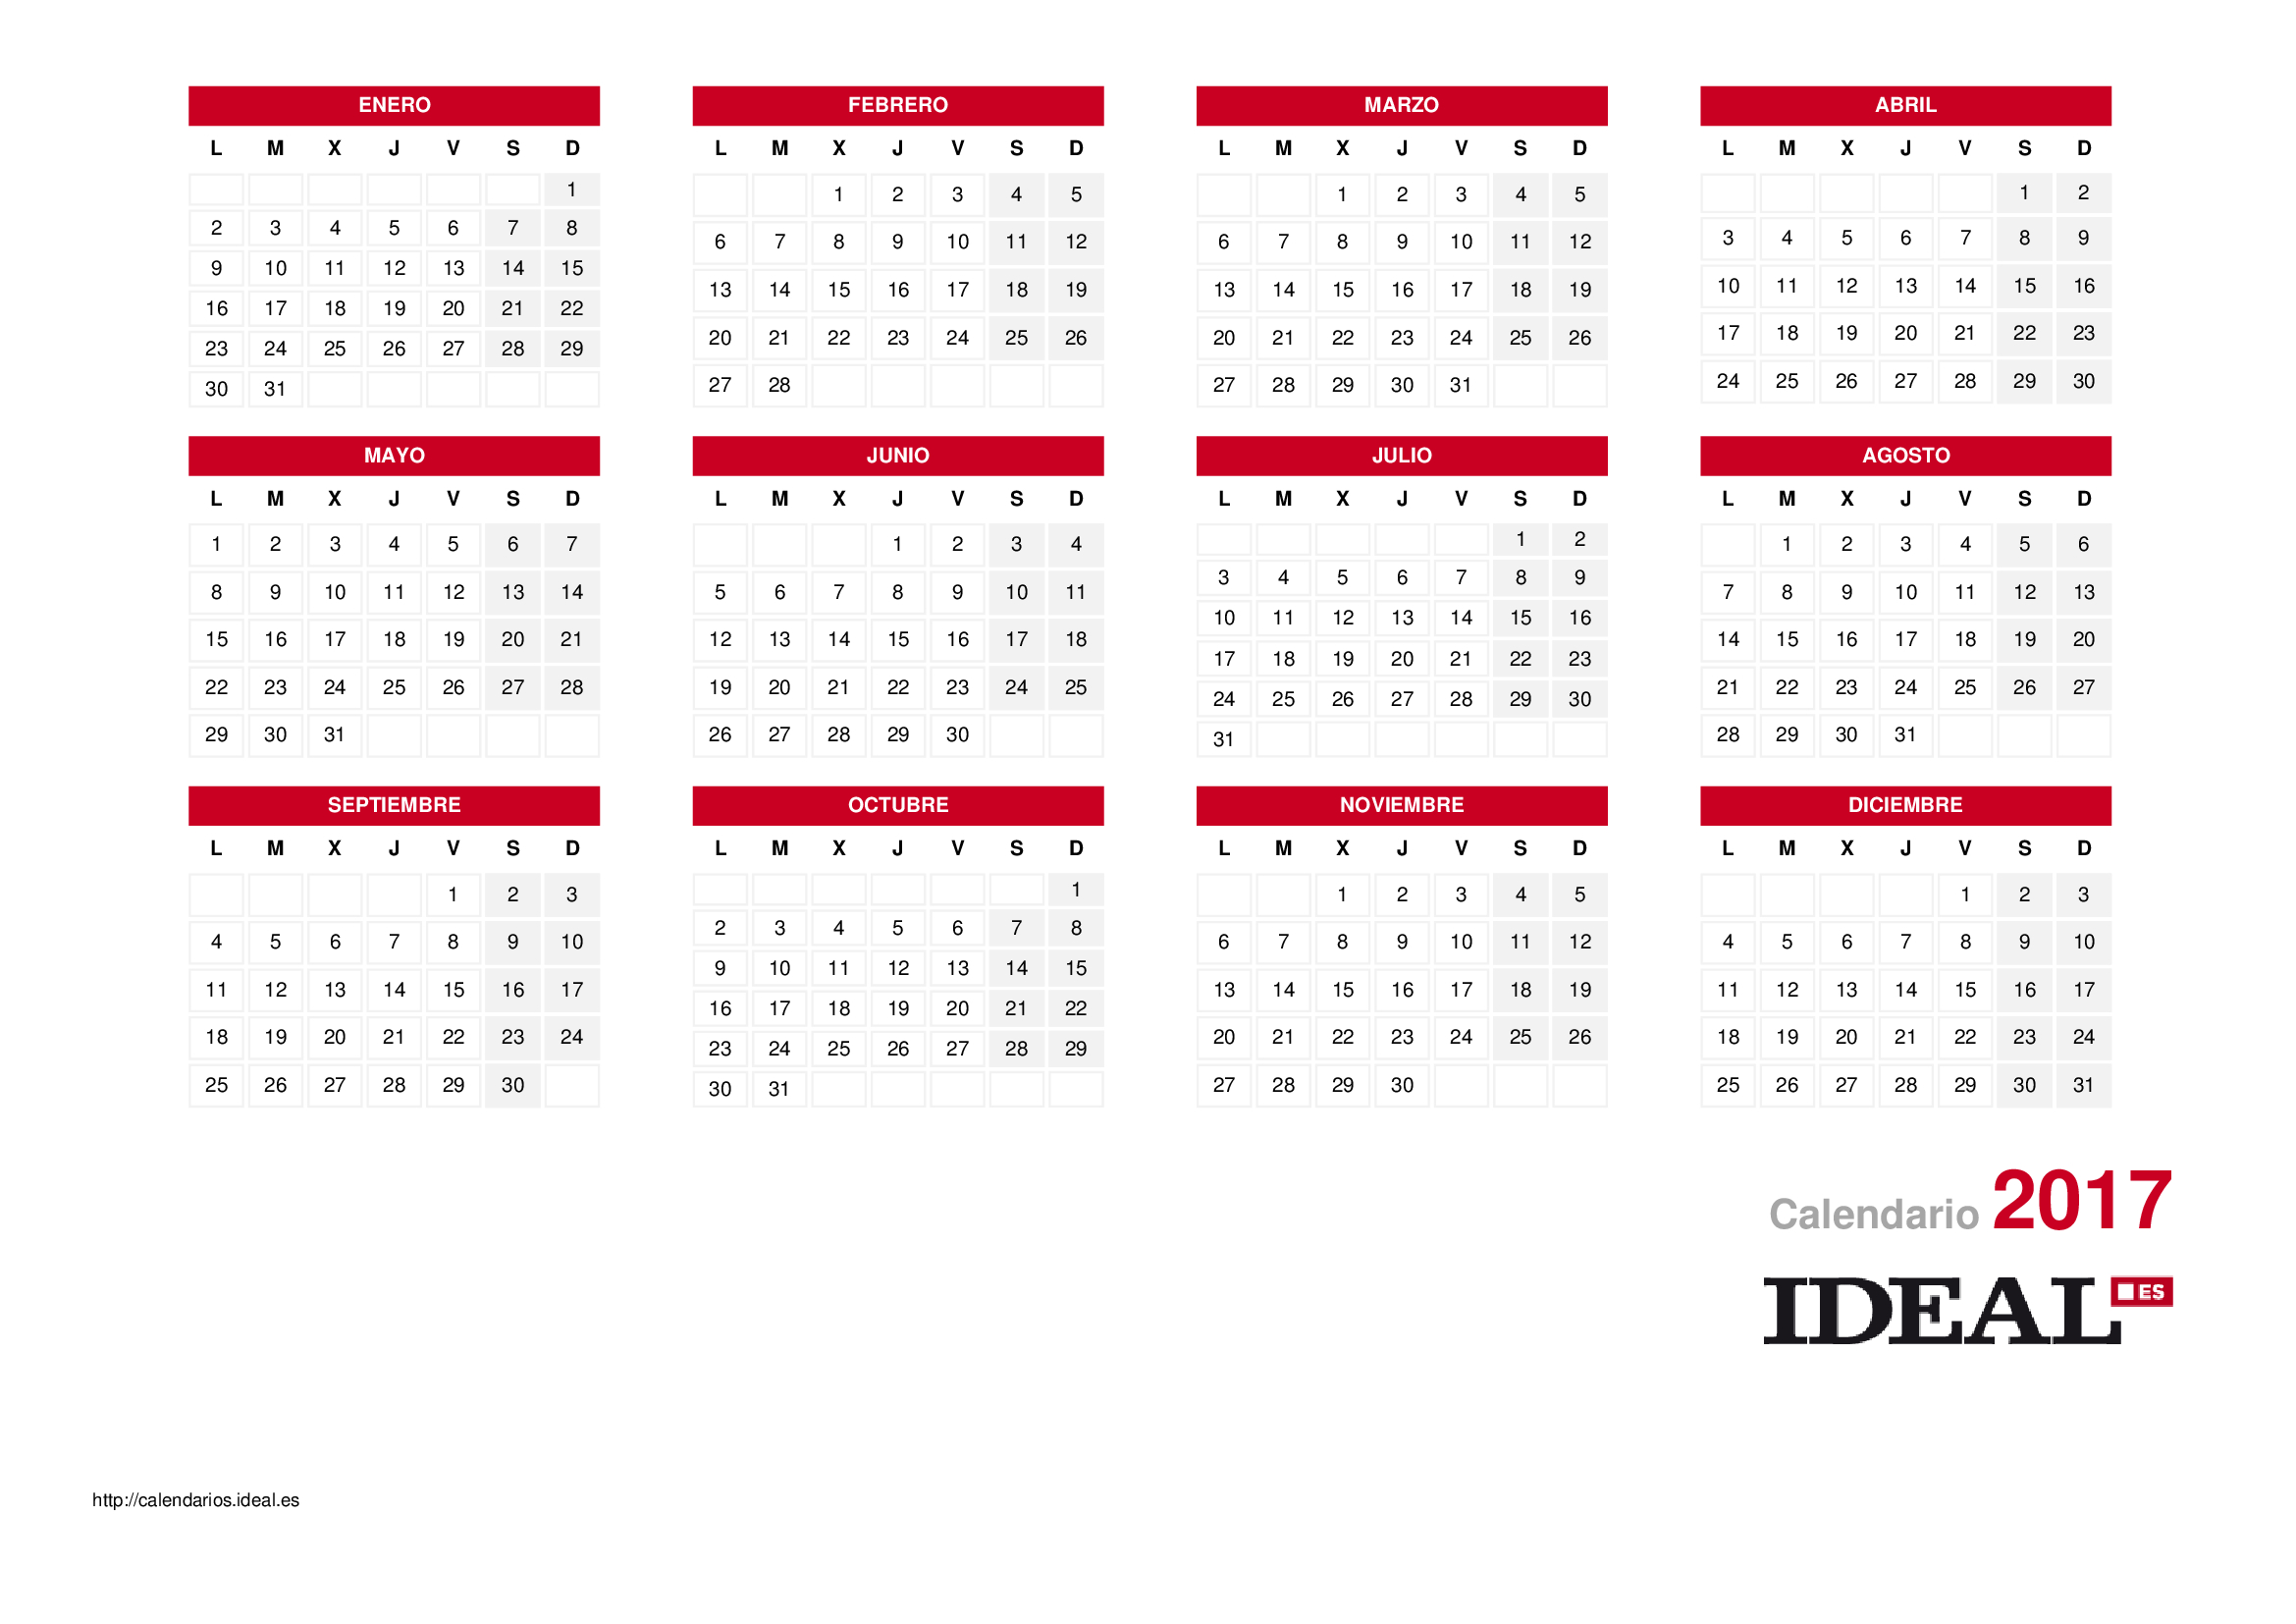 Calendario Laboral 2020 Madrid Capital.Calendario Laboral De 2019 Calendarios Ideal Dias Festivos